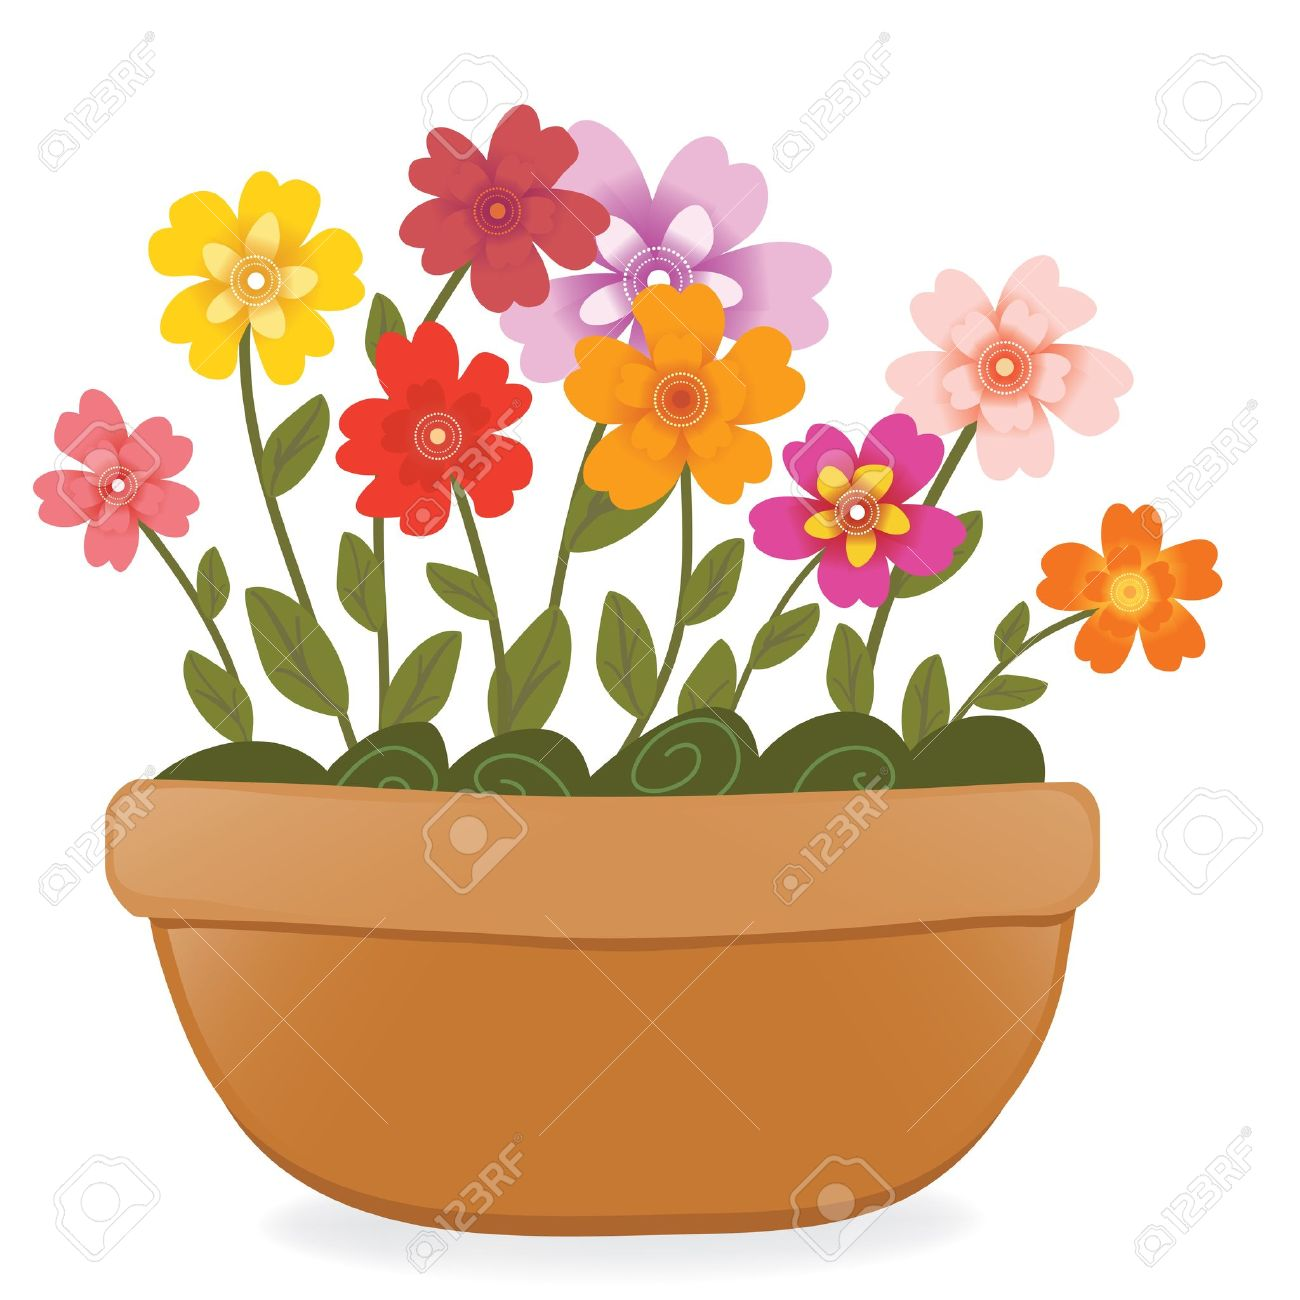 flower pot royalty free cliparts vectors and stock illustration rh 123rf com empty flower pot clipart flower pot clipart black and white